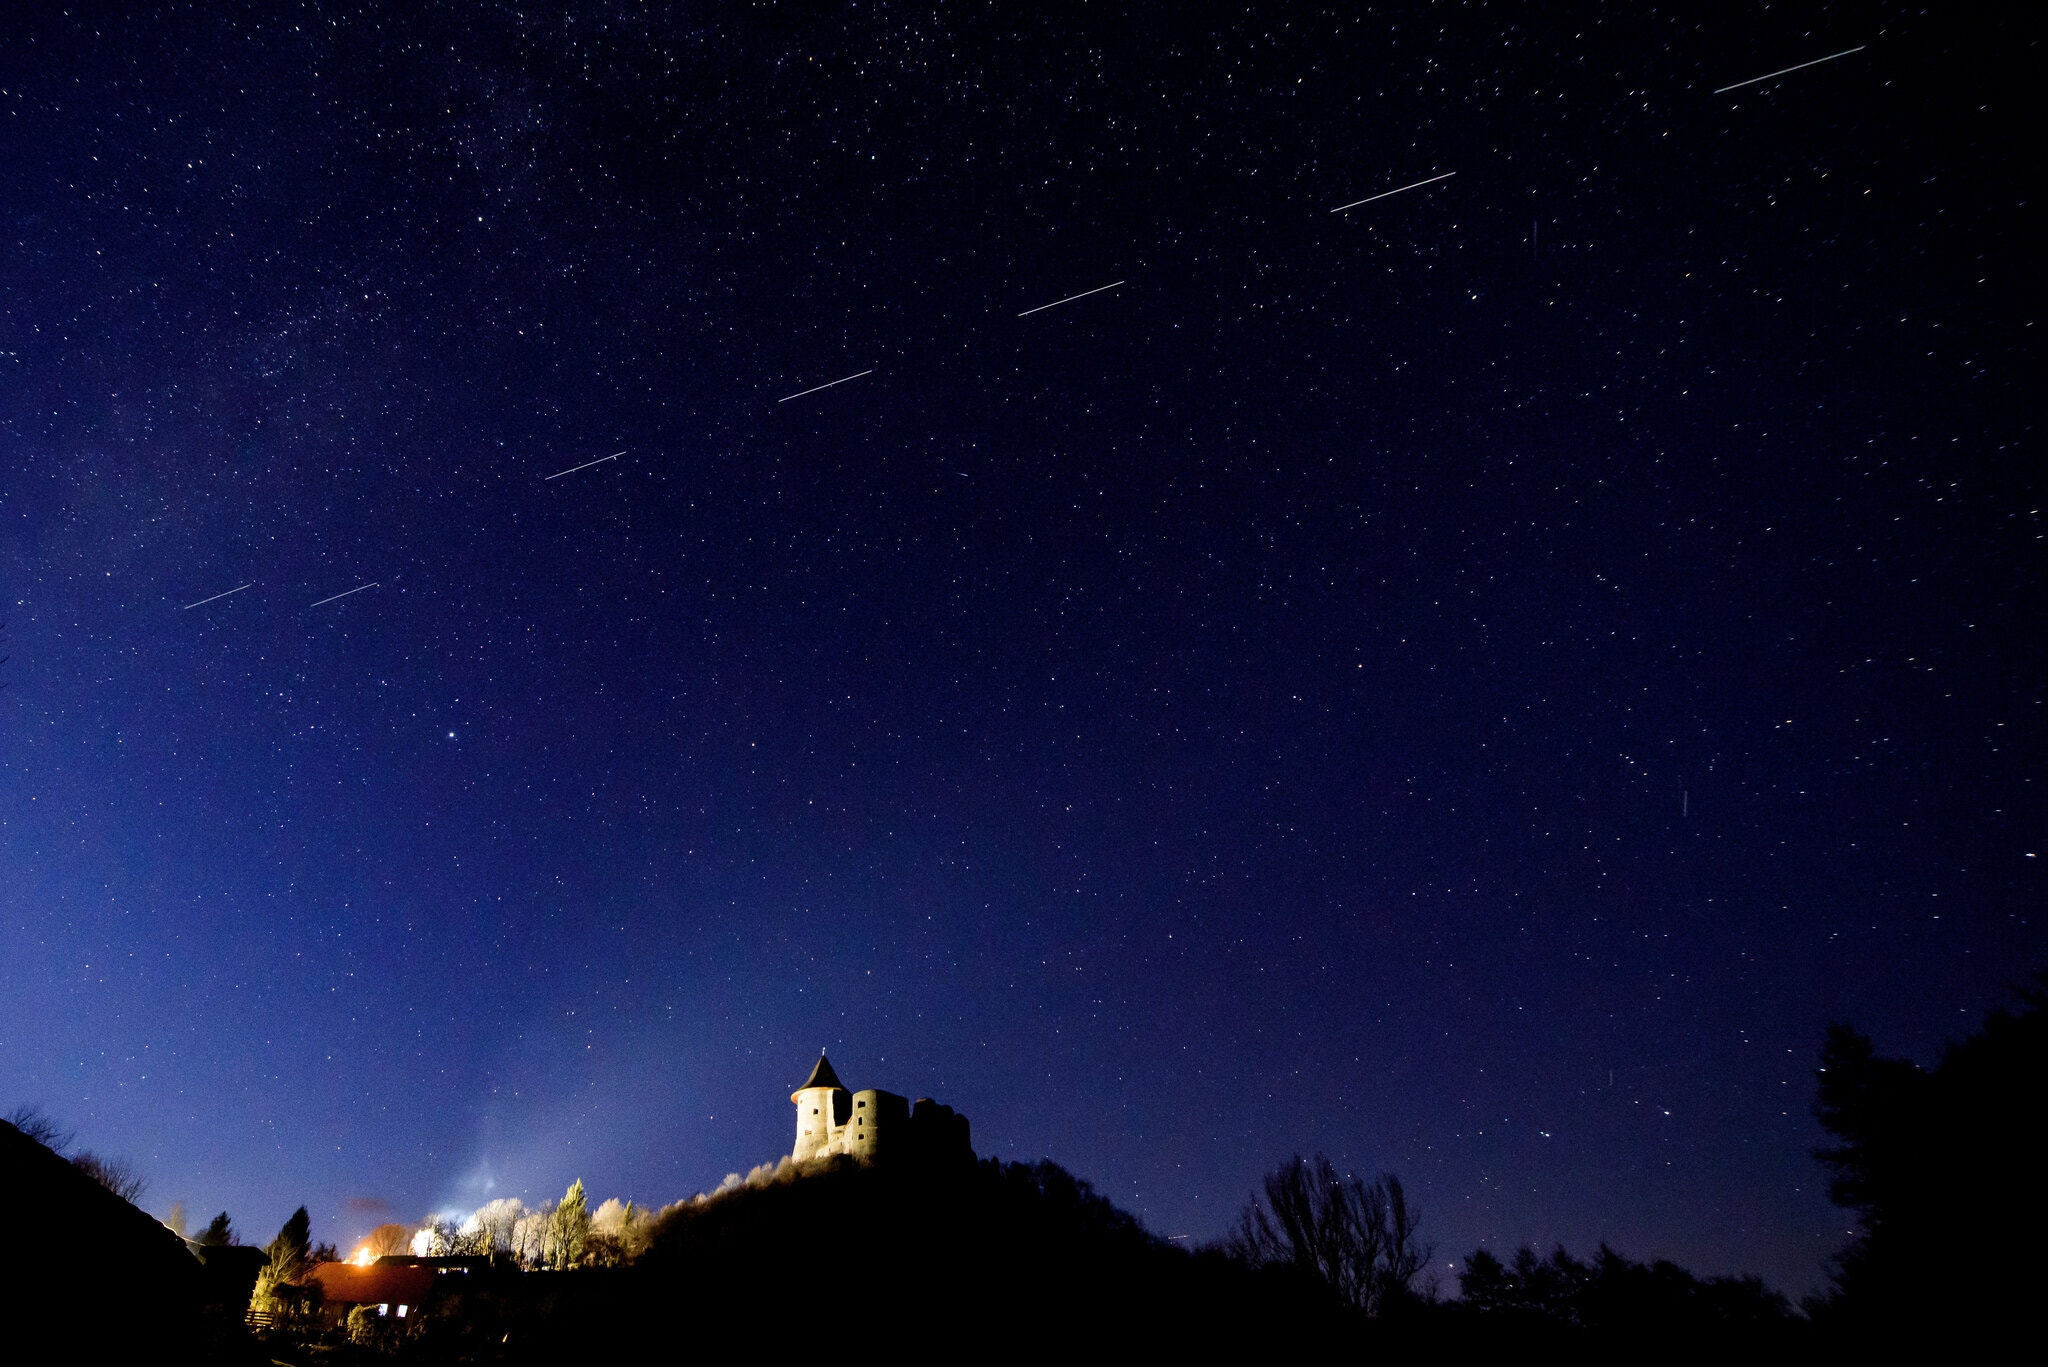 20200816.Amazon-Satellites-Add-to-Astronomers-Worries-About-the-Night-Sky-04.jpg